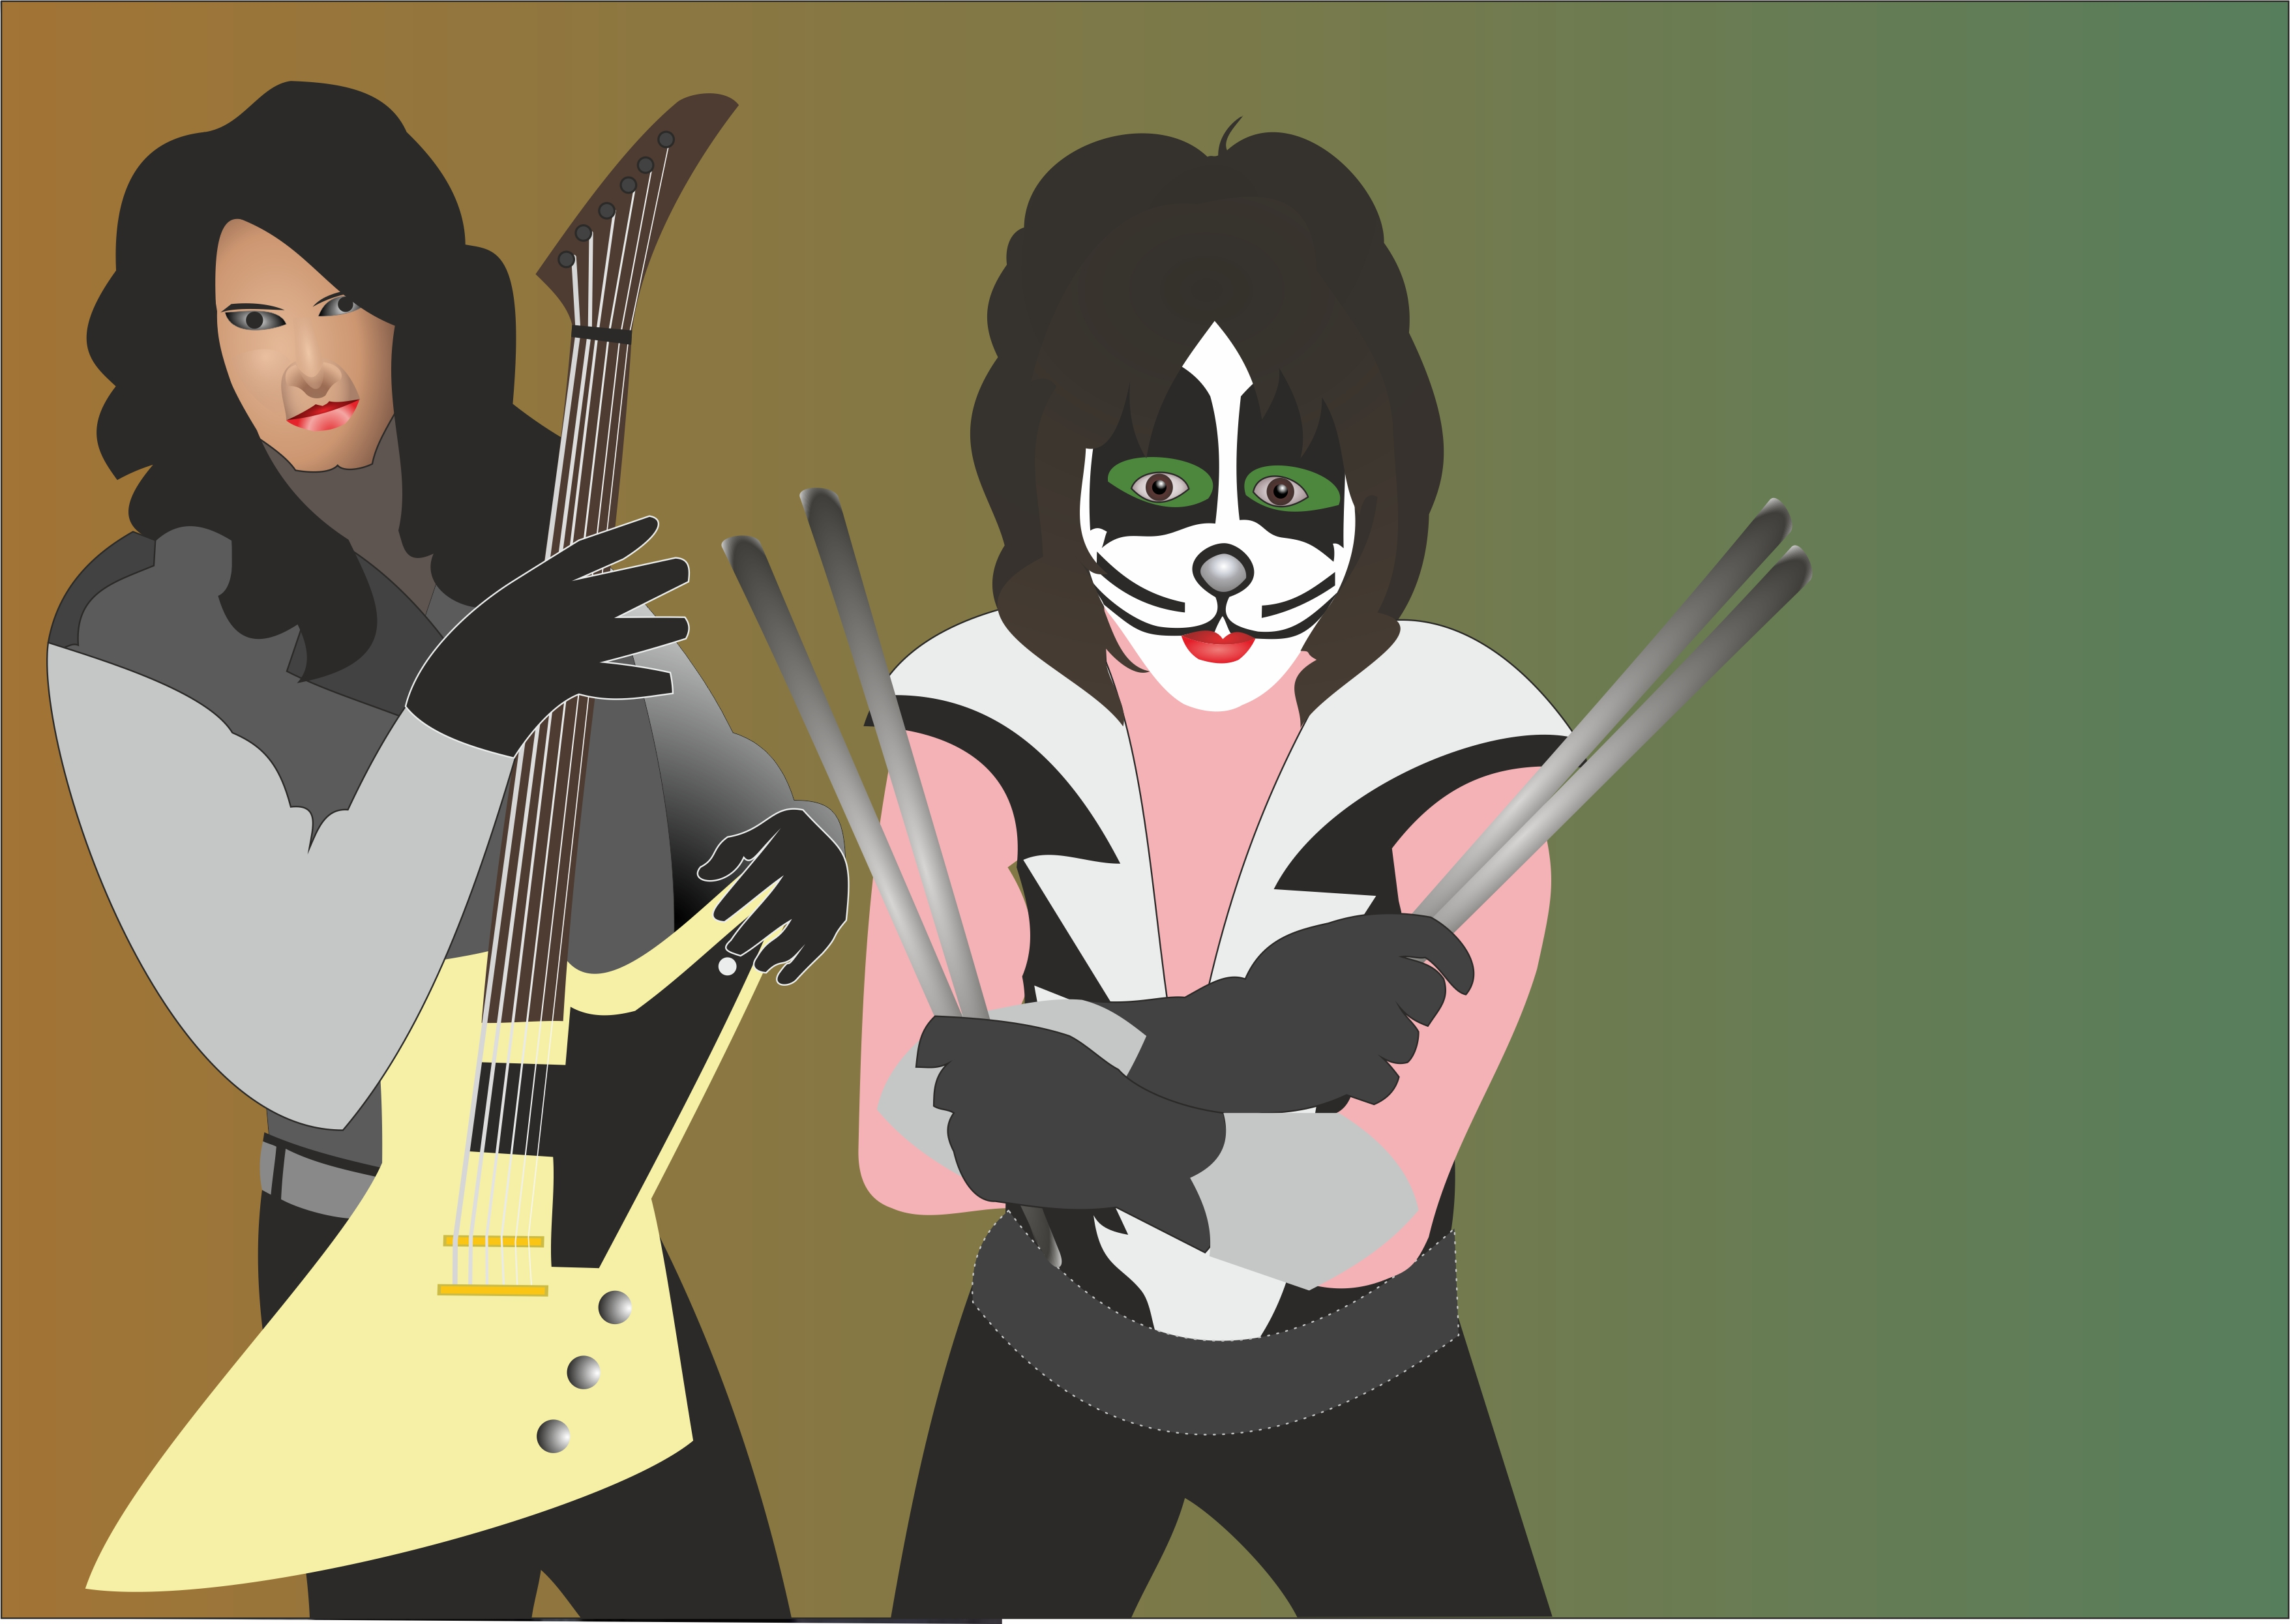 December (Bruce Kulick and Peter Criss) by Apkx